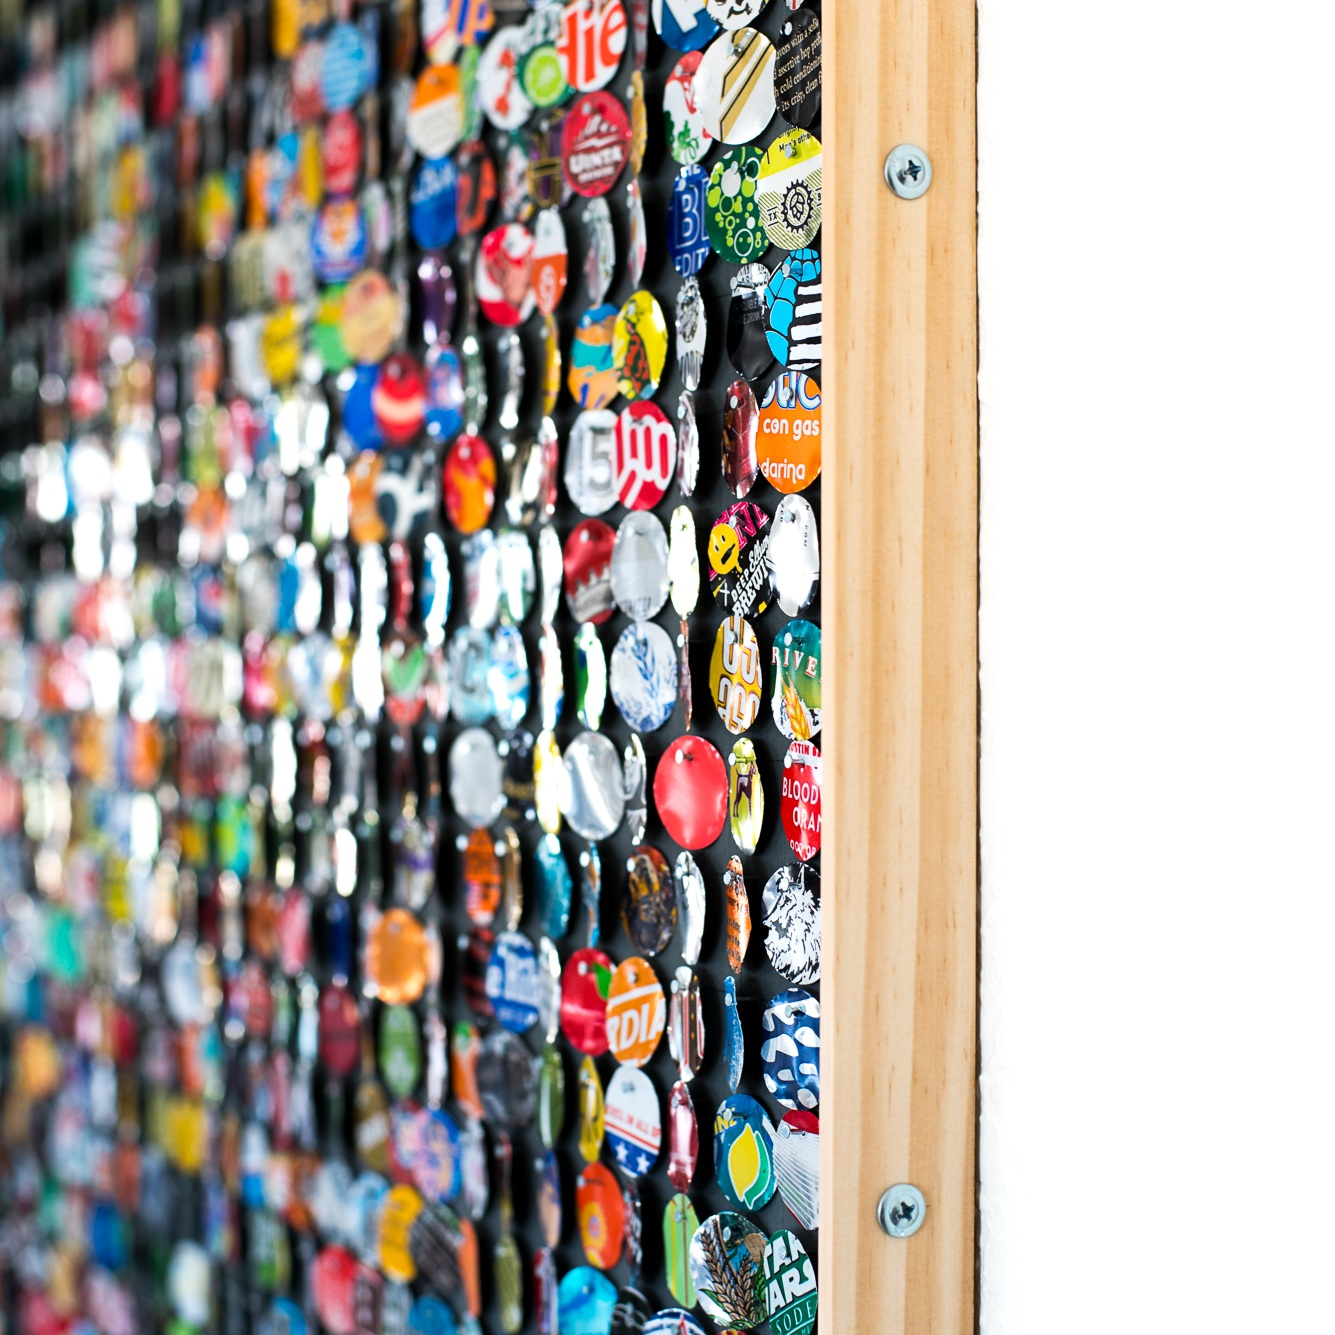 hannah-nemo-beer-can-recycled-moving-mosaic-close-up-detail.jpg